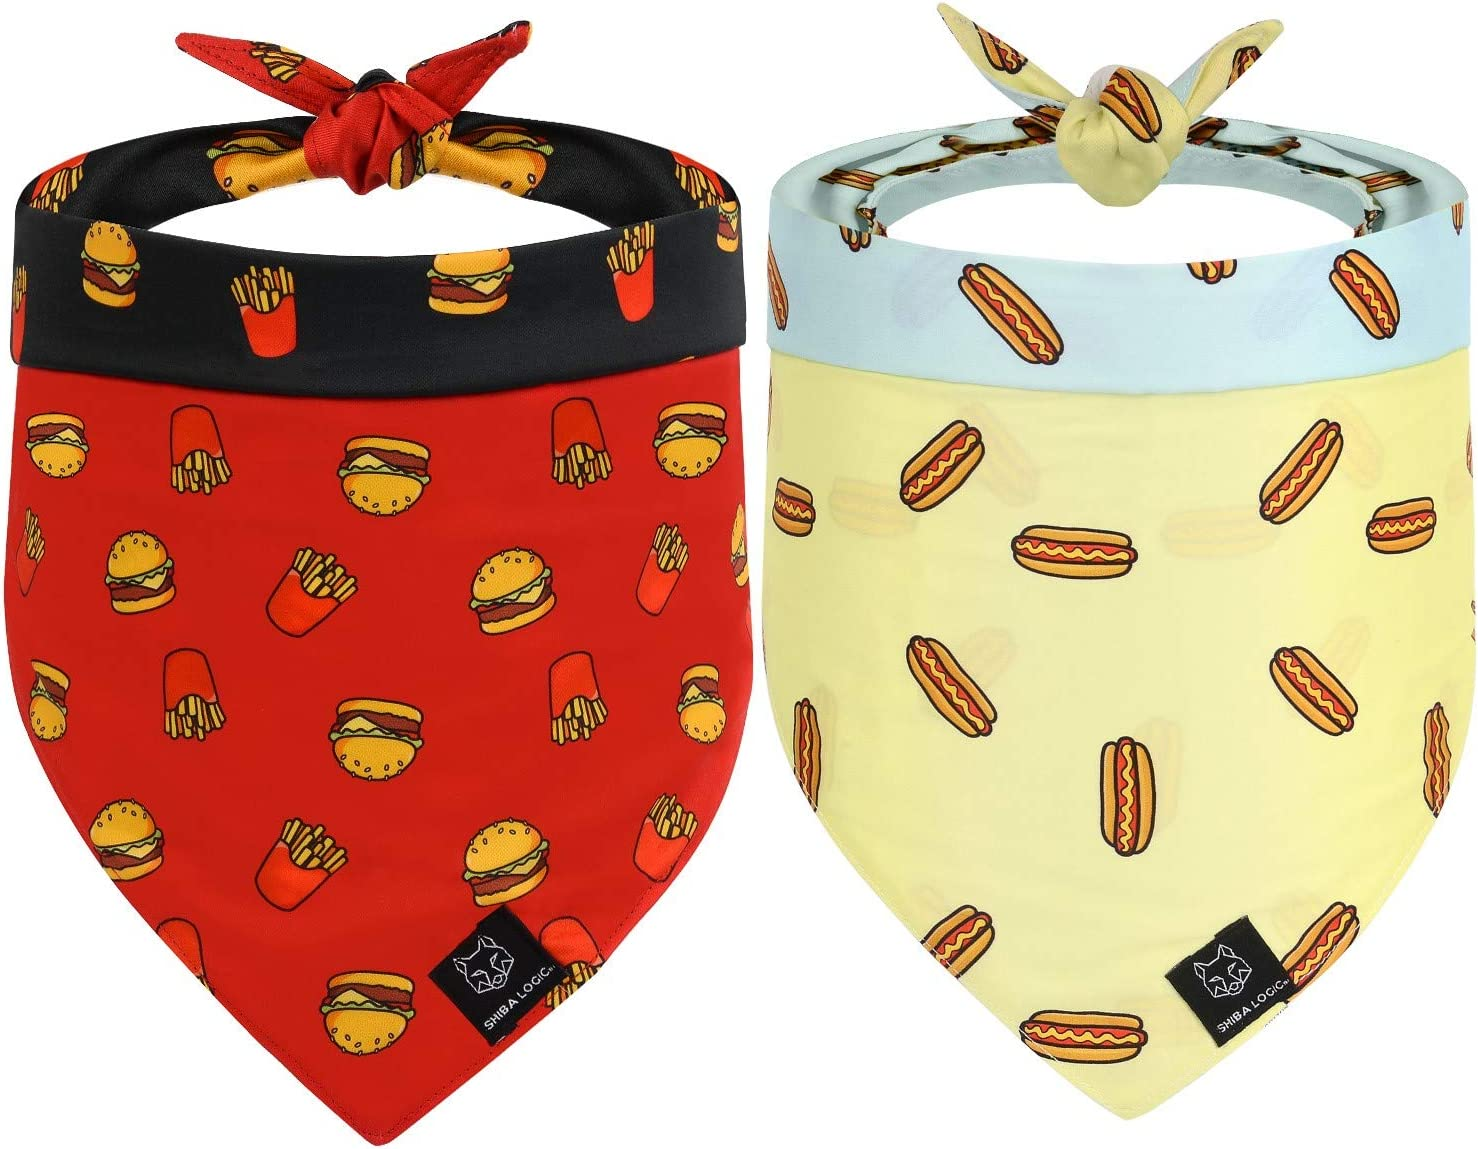 SHIBA LOGIC Reversible Dog Bandanas 2 Pack | Size Medium | Pet Scarf for Girl & Boy Dogs Puppy or Cats | Blue/Yellow Hot Dogs - Red/Black Burgers & Fries